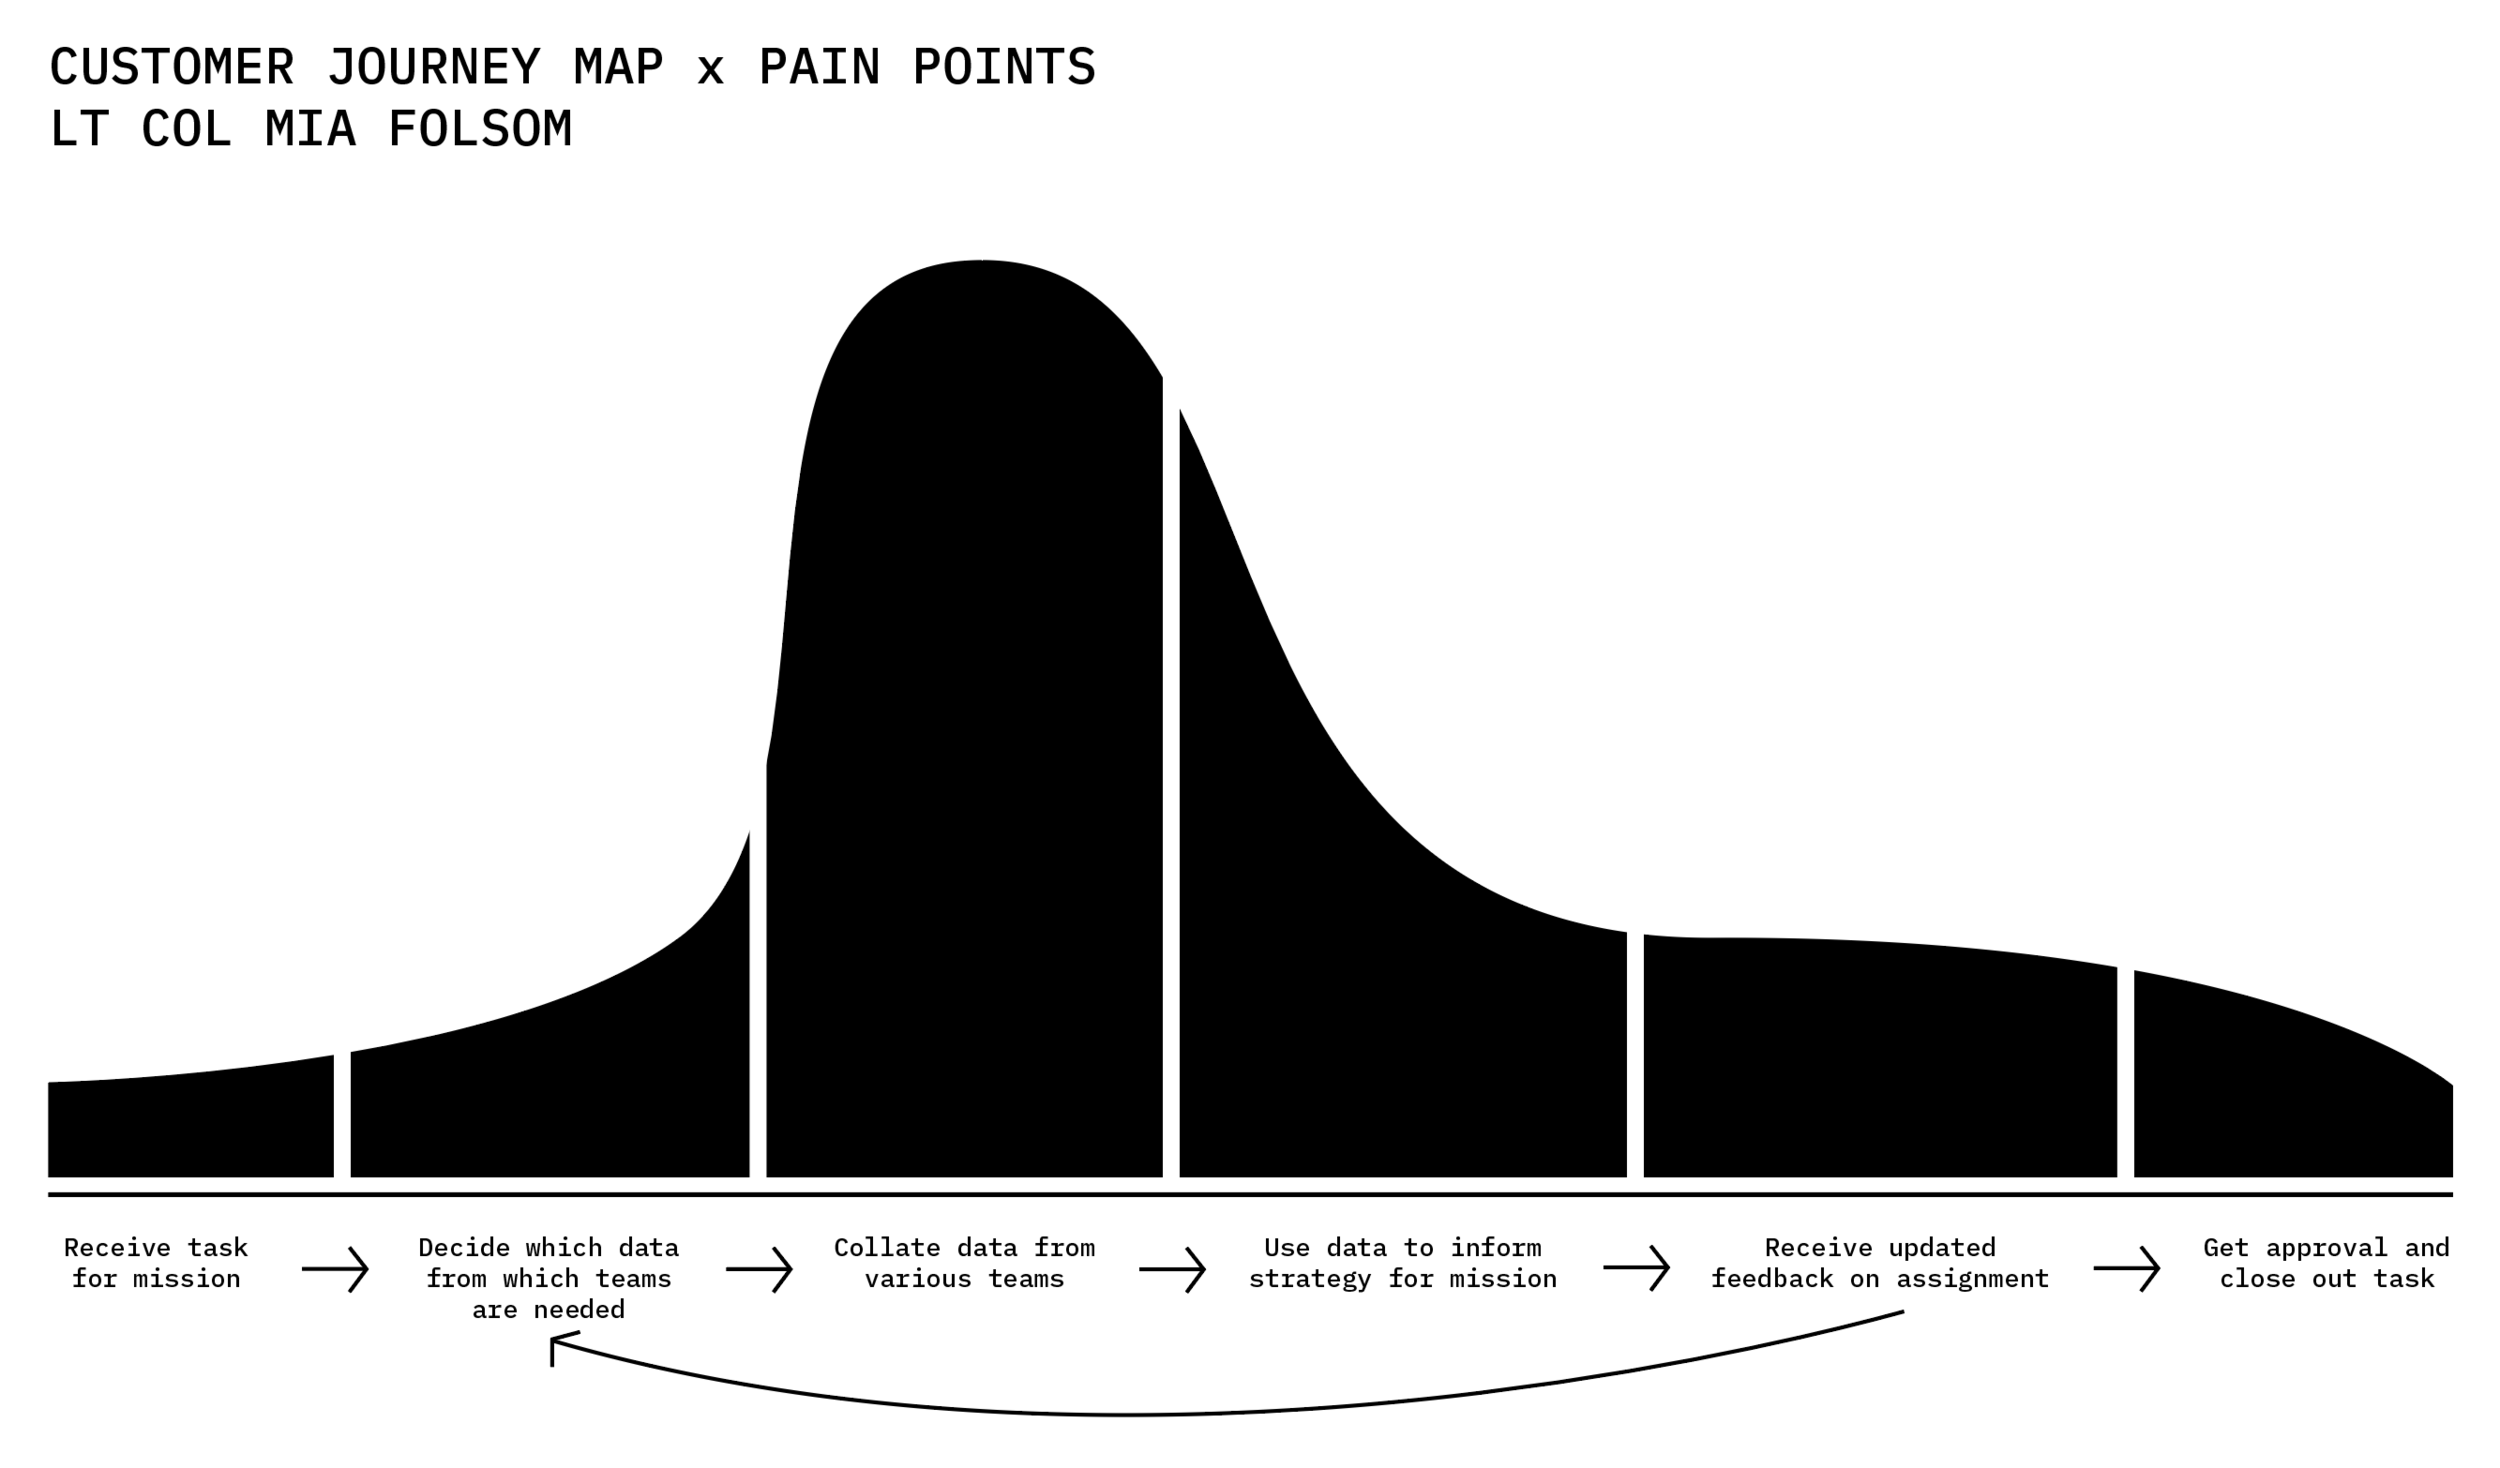 Customer Journey Map x Pain Points